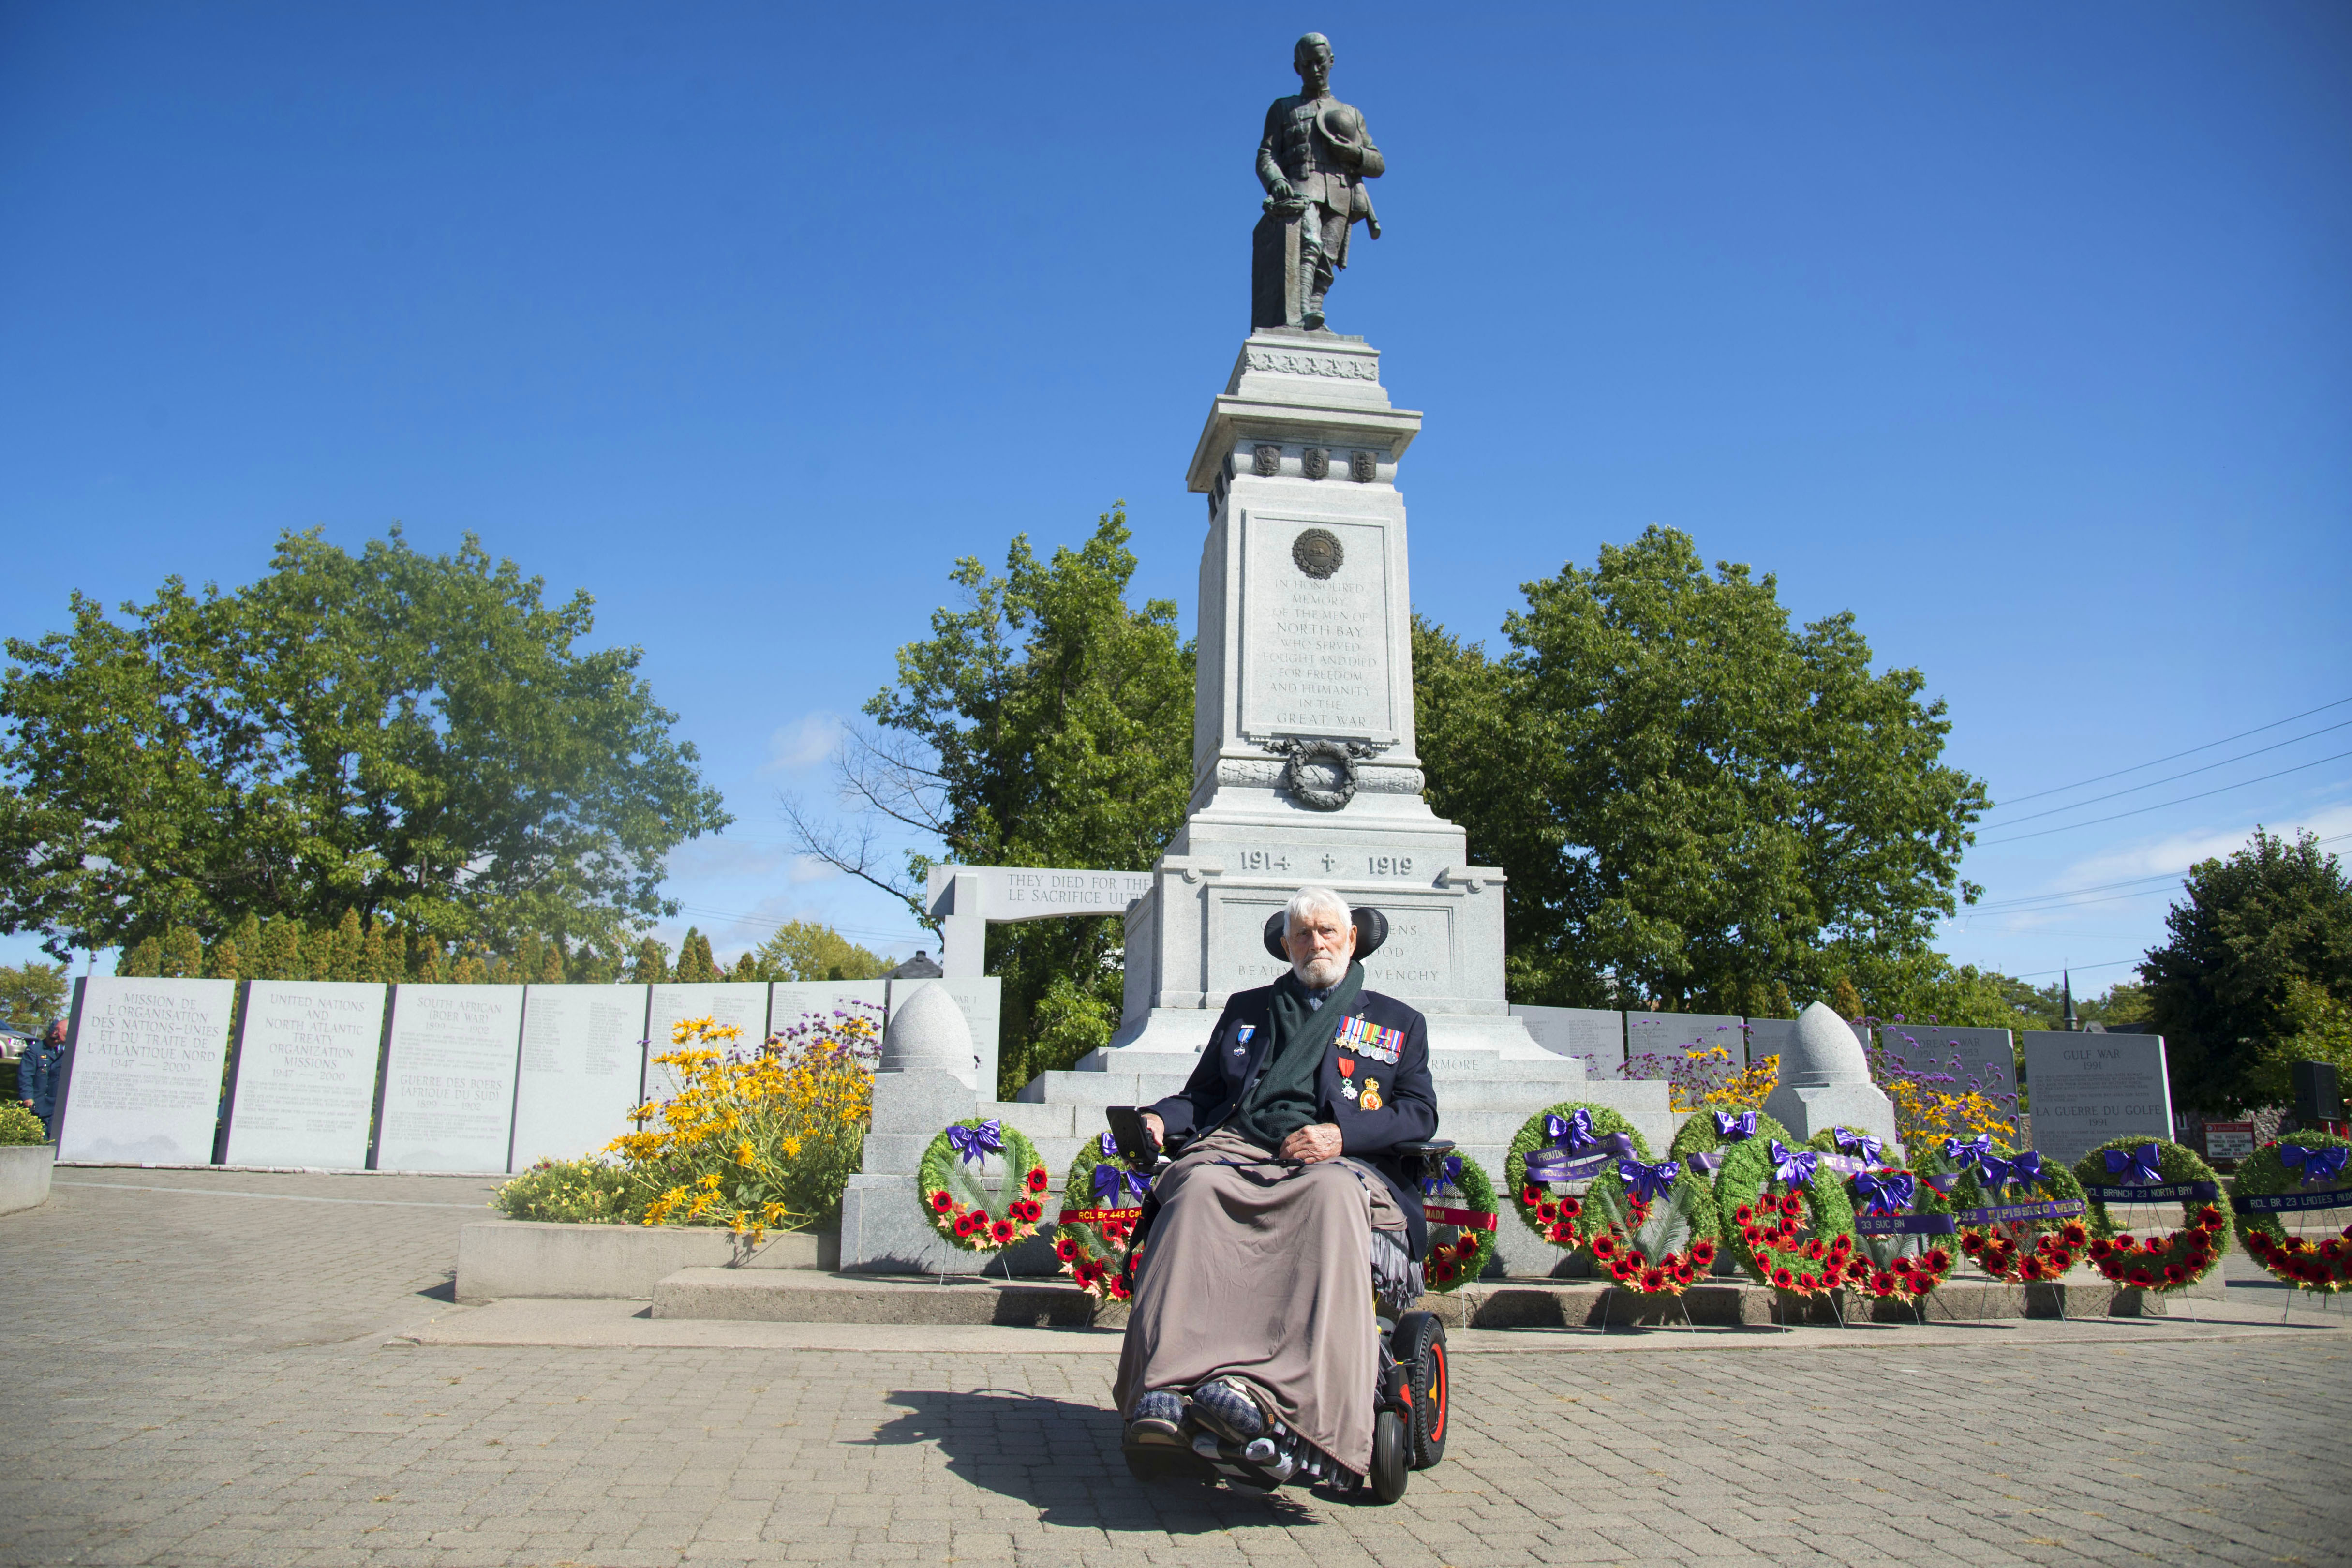 An elderly man wearing a dark jacket displaying many medals sits in a wheelchair in front of a large monument topped by a bronze soldier and fronted by wreaths on stands.